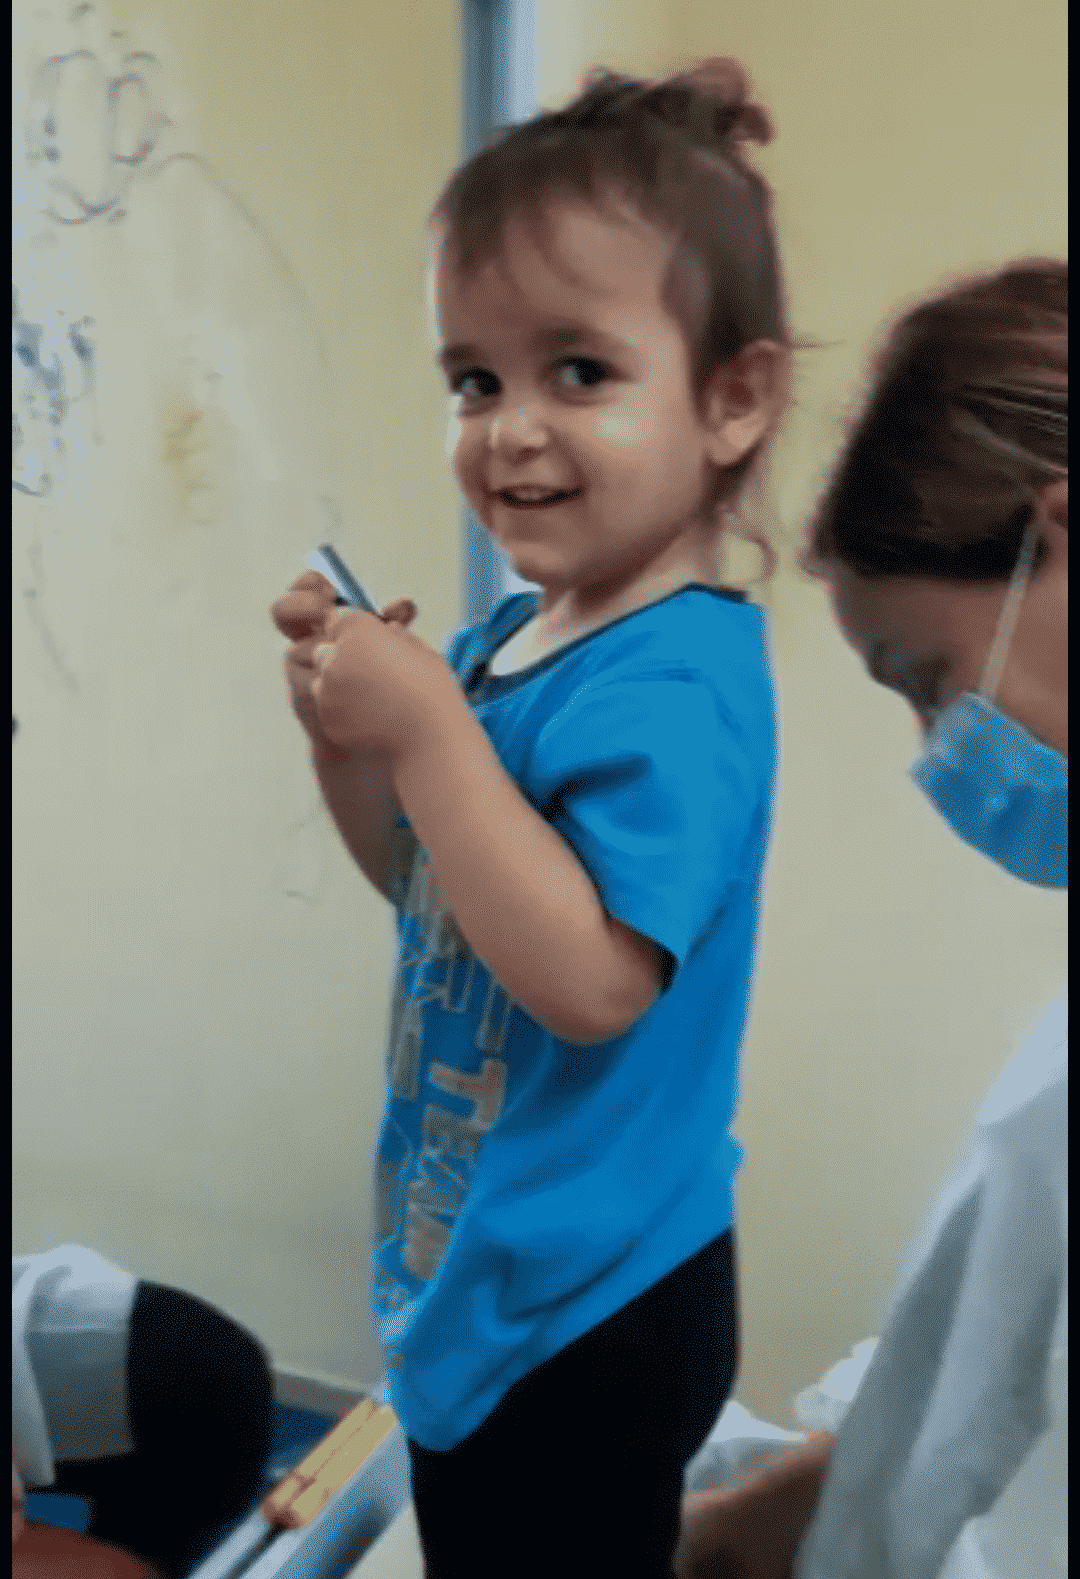 boy receiving physiotherapy